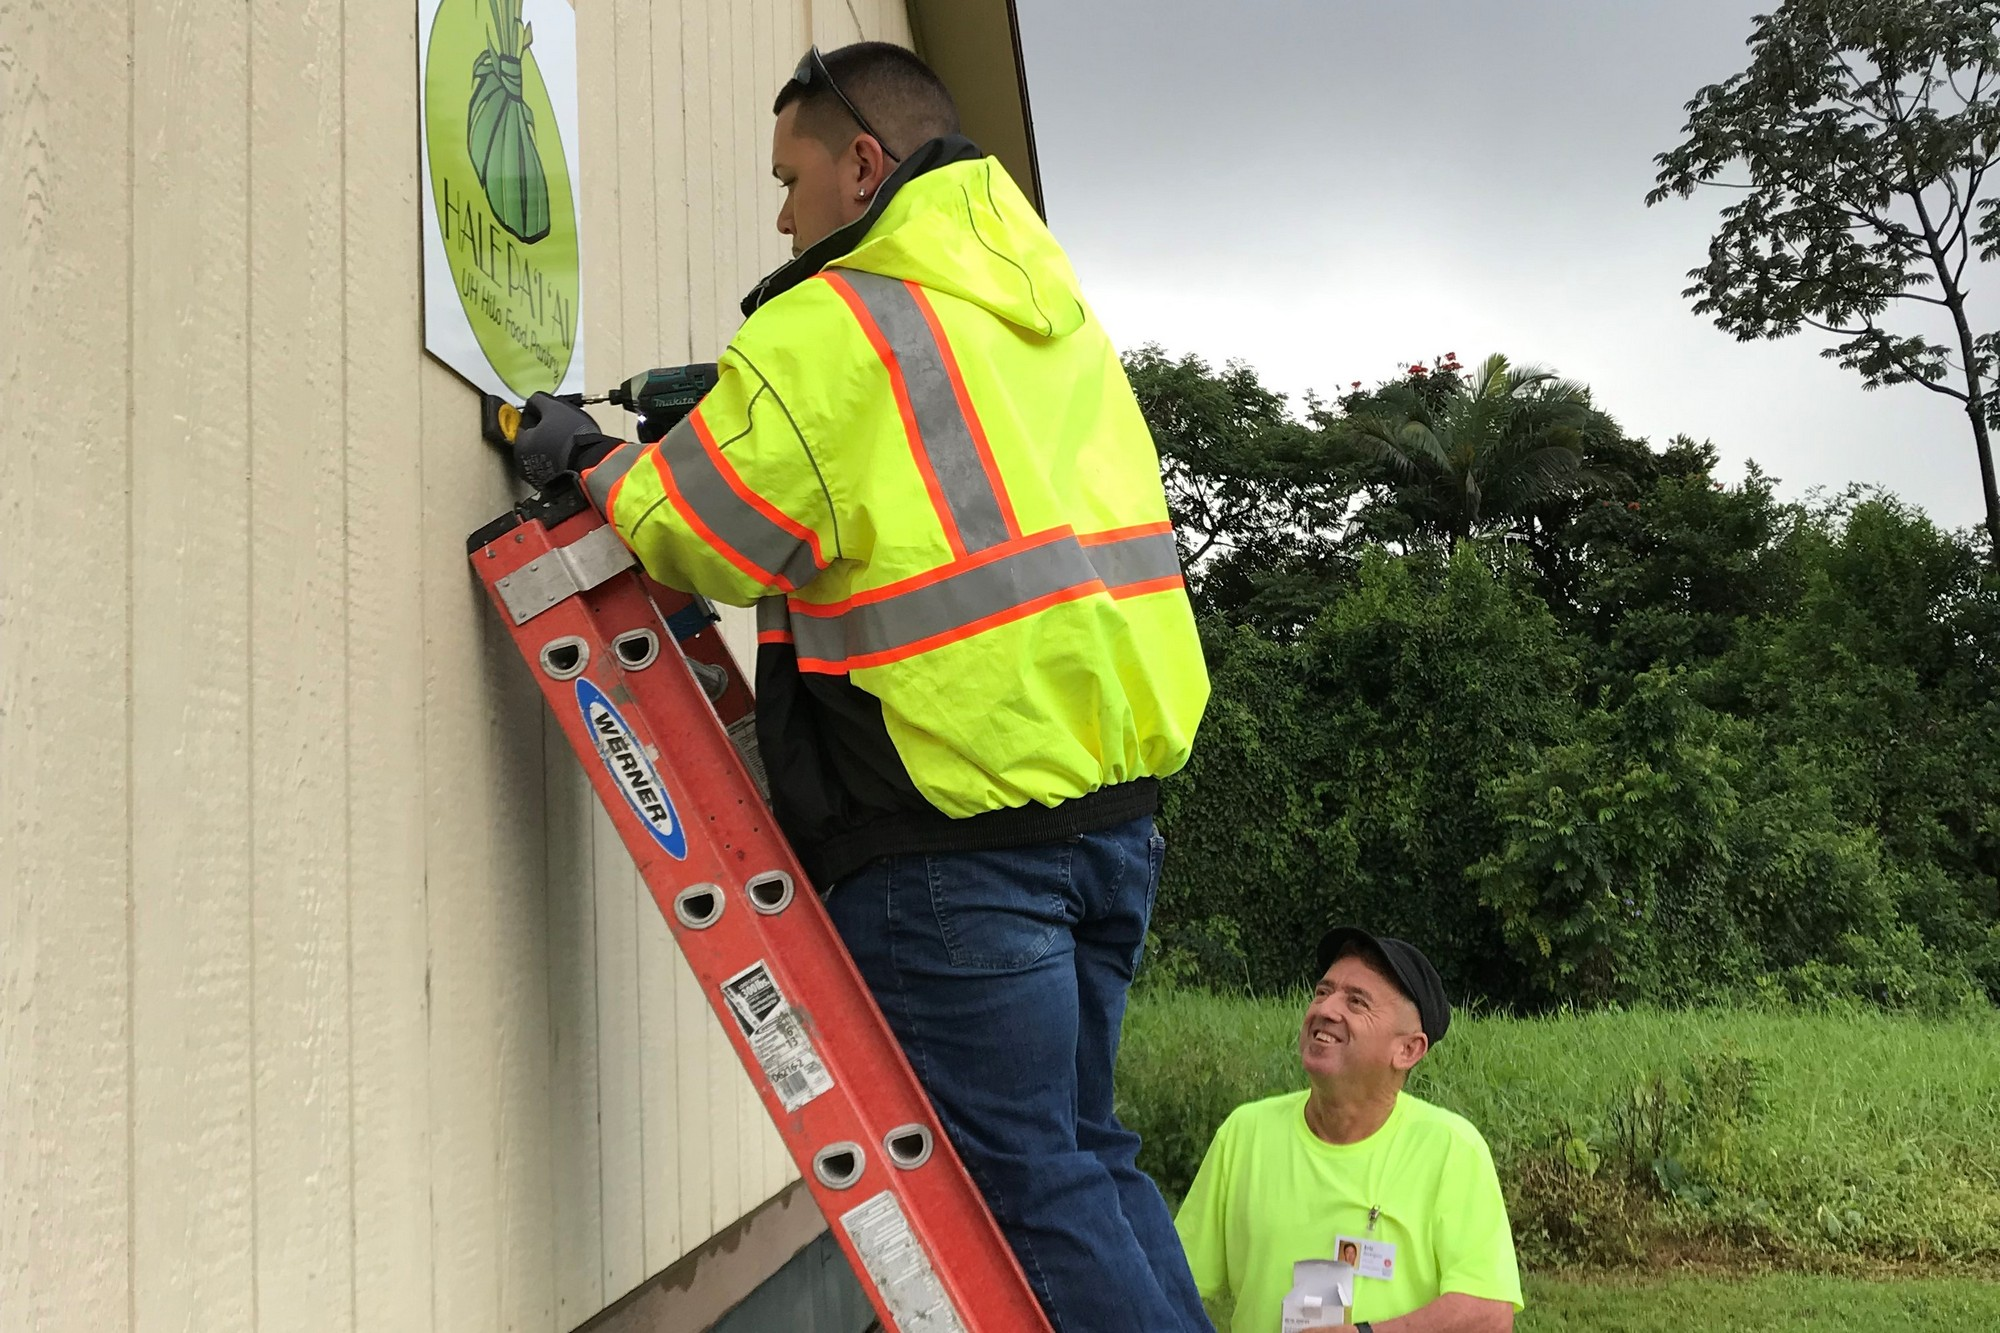 A worker screw a sogn on the side of the building, while another looks on.